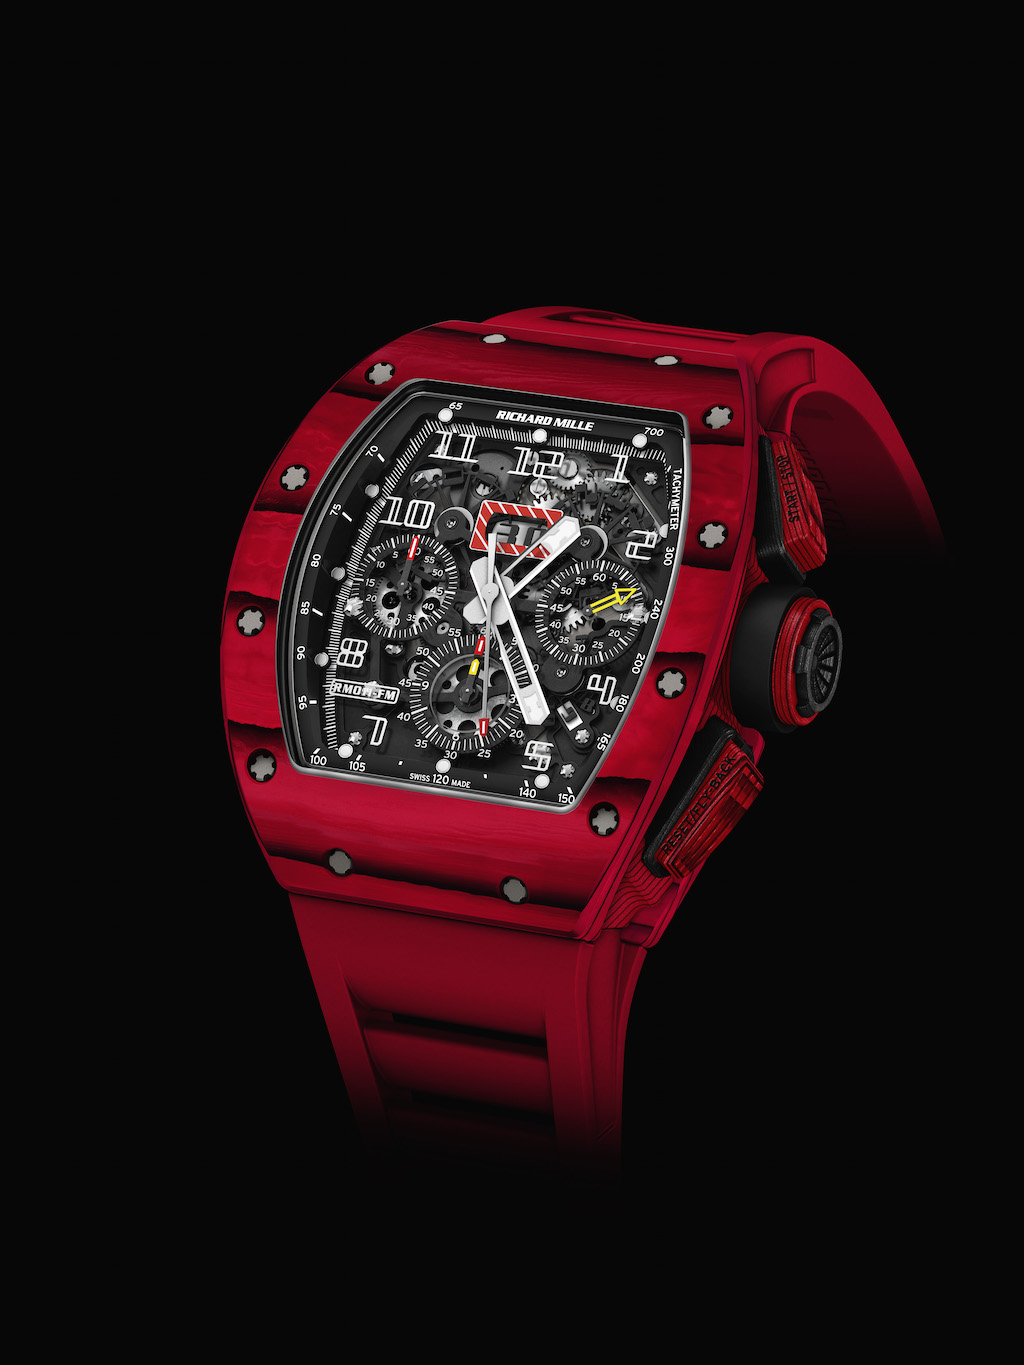 Timezone Rss2 Feed Suunto Kailash Cooper Travel Watch With Gps Glonass Rm 011 Red Tpt Quartz Richard Mille Rm011